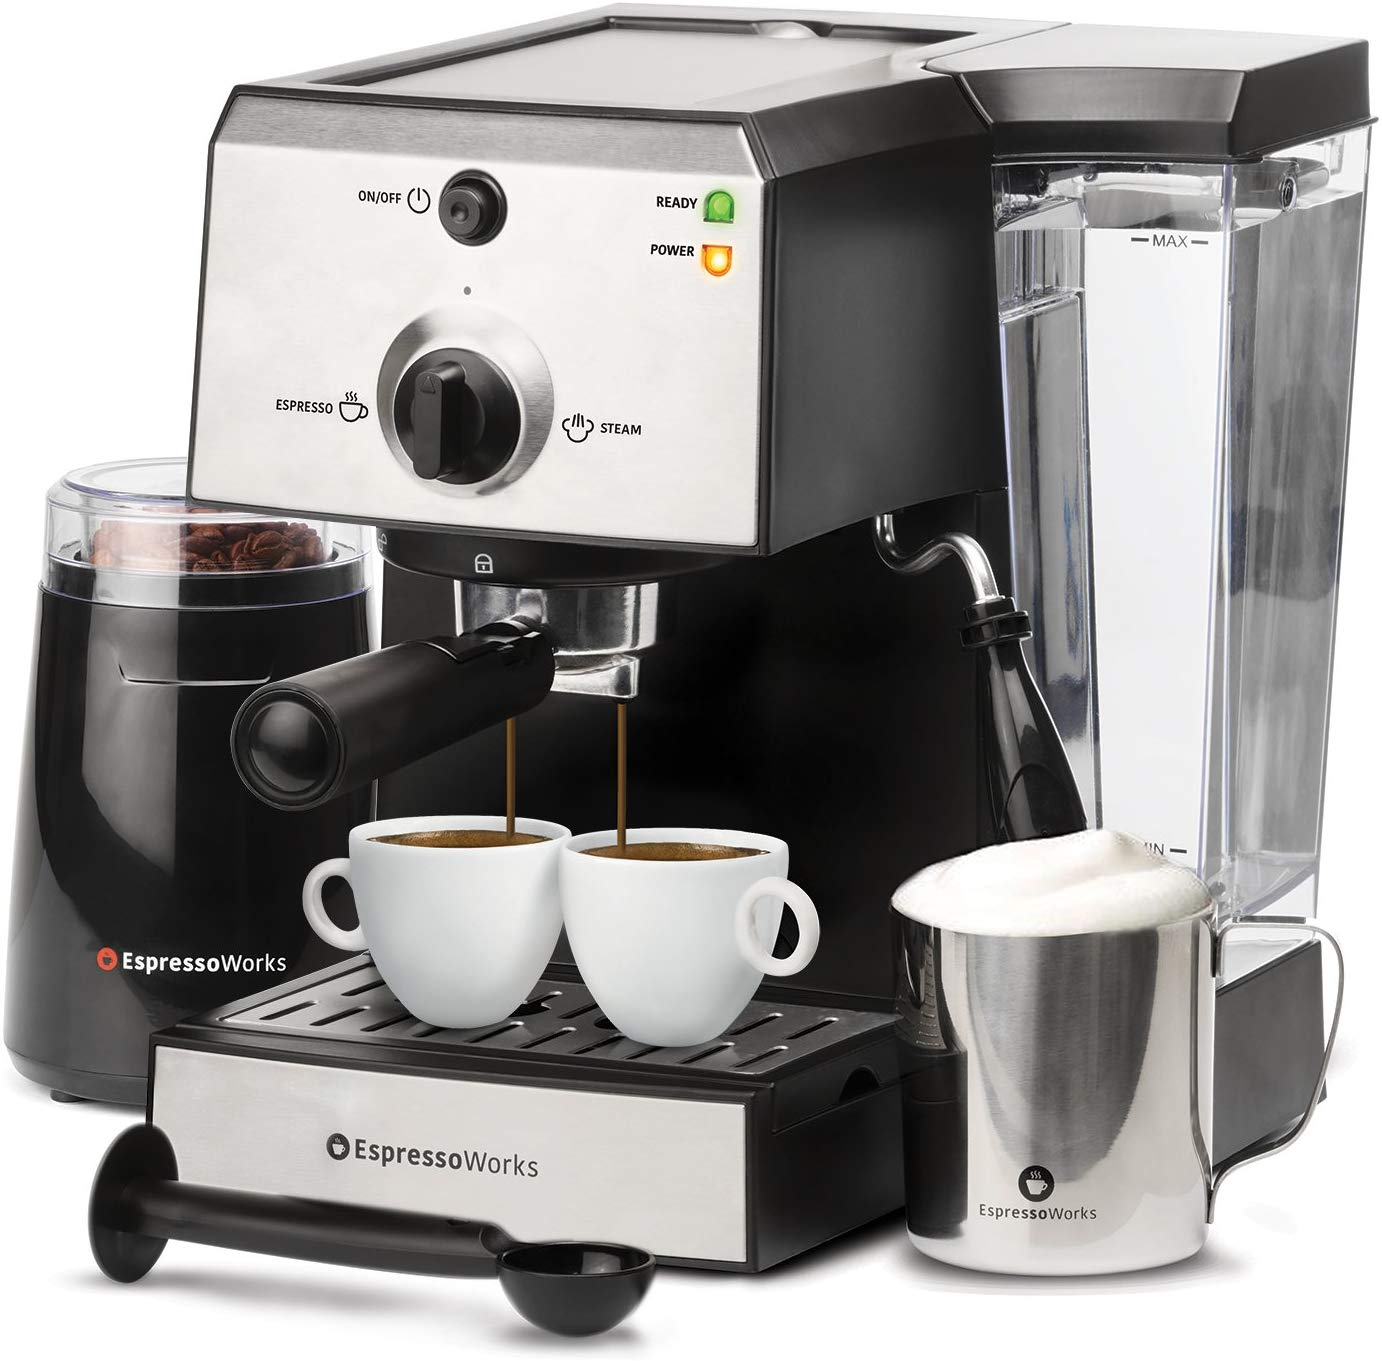 7 Pc All-In-One Espresso Machine & Cappuccino Maker Barista Bundle Set w/ Built-In Steamer & Frother (Inc: Coffee Bean Grinder, Portafilter, Milk...